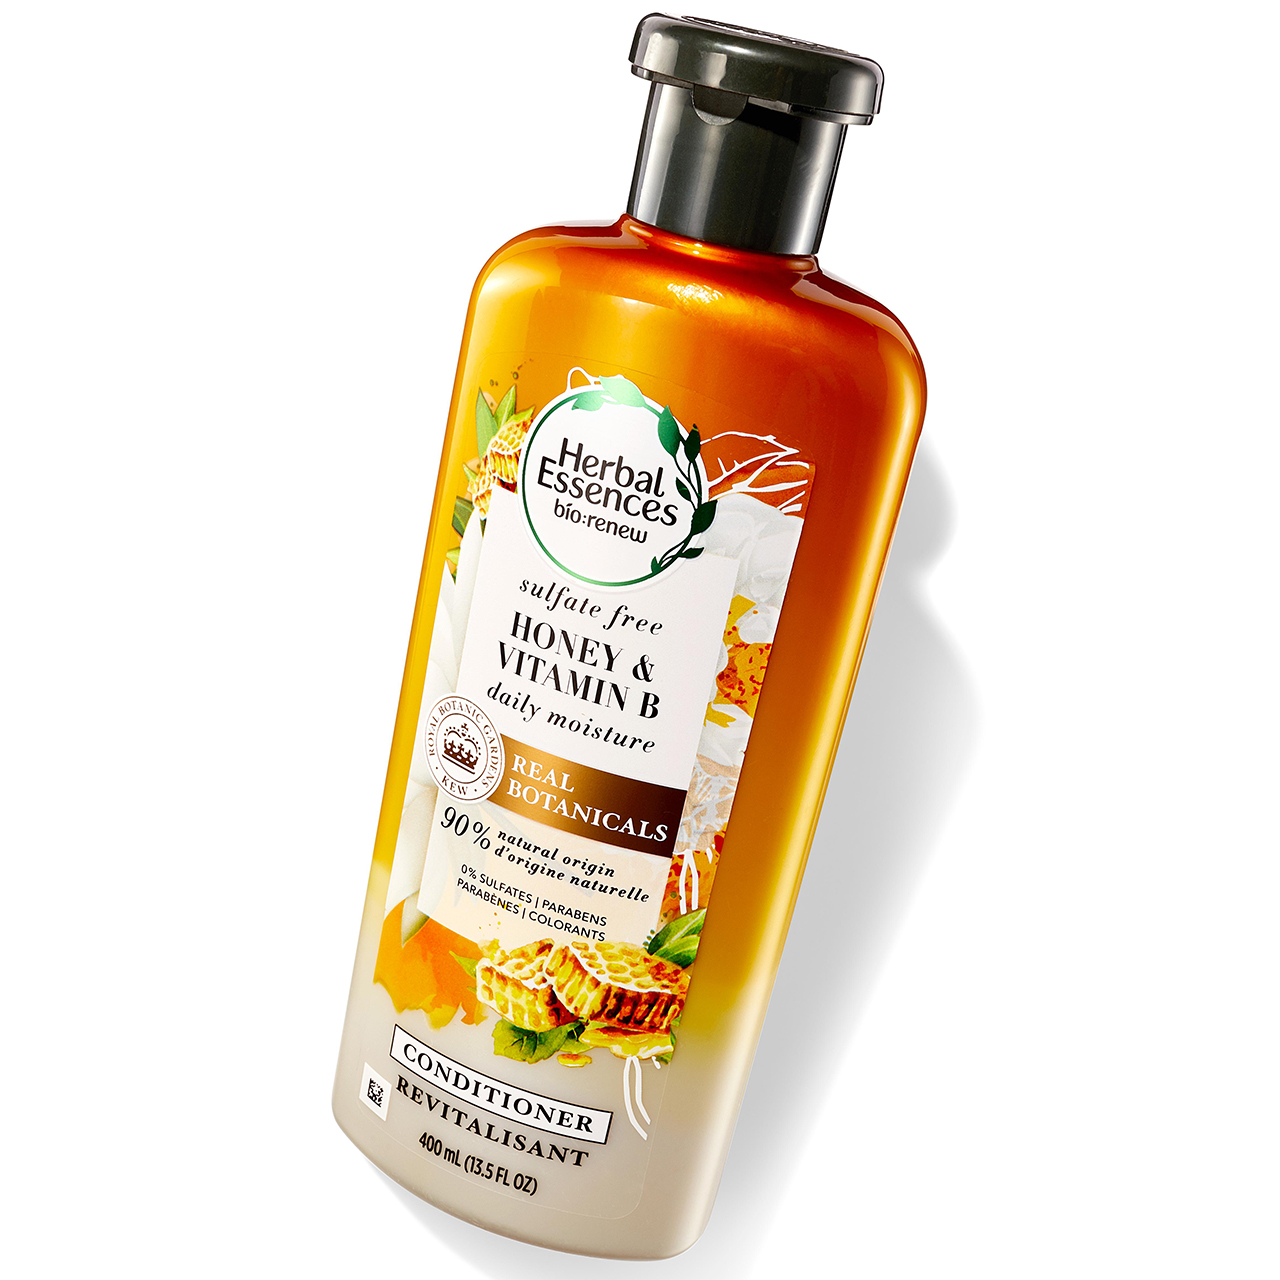 Herbal Essences Sulfate Free Honey & Vitamin B Conditioner